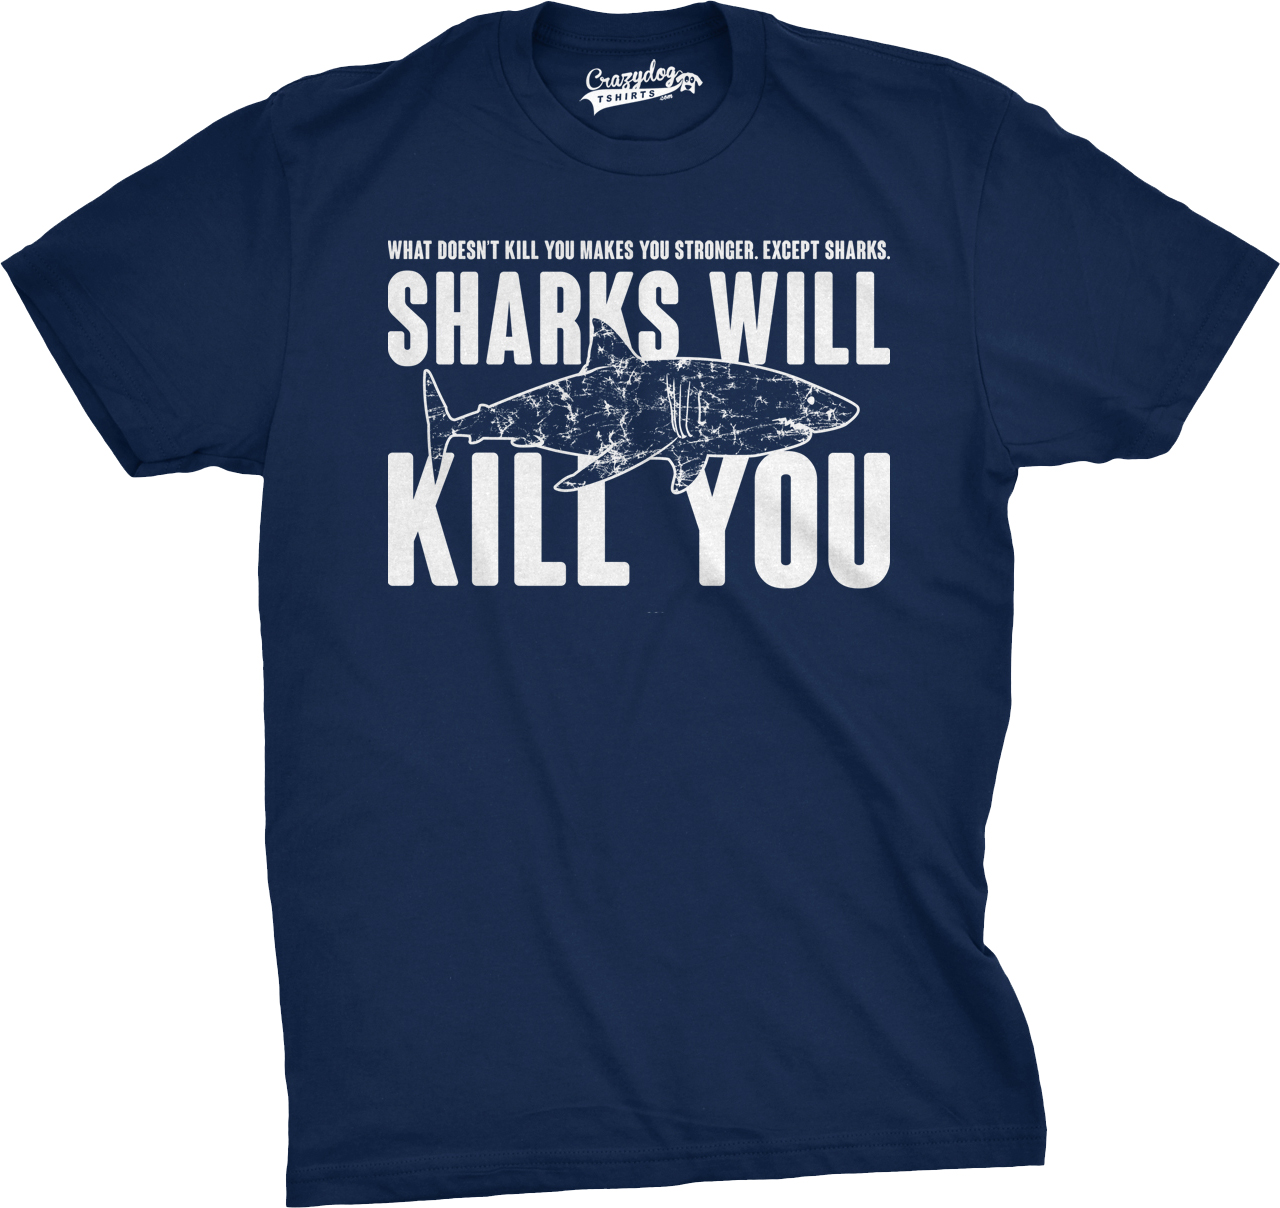 7dc2514d89 Mens Sharks Will Kill You Funny T Shirt Sarcasm Novelty Offensive Tee For  Guys (Navy) - M